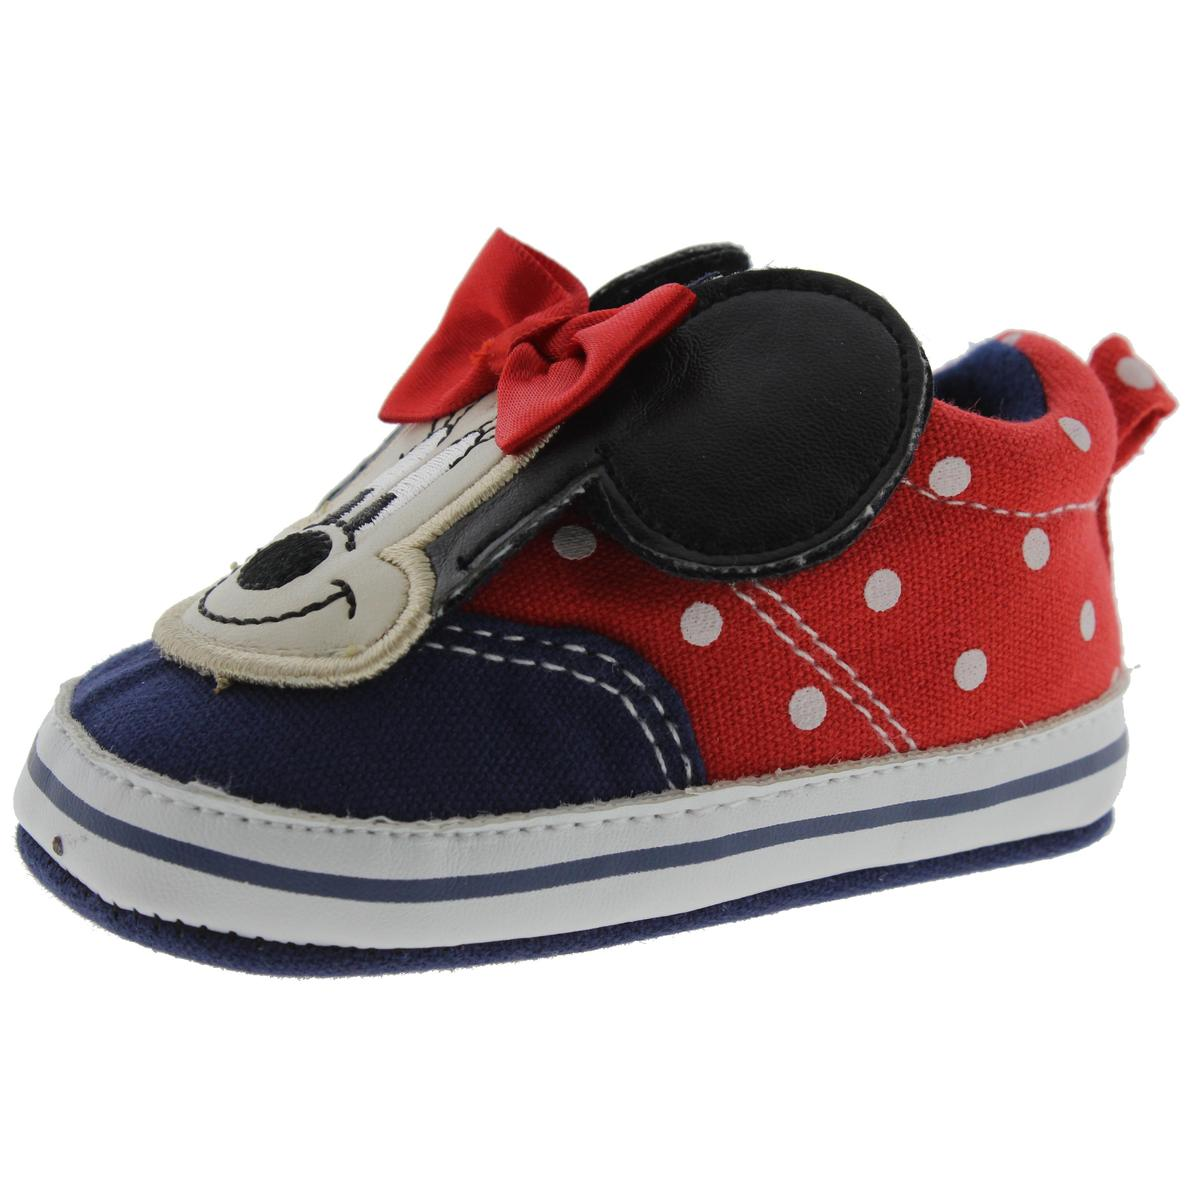 Infant Sneakers Disney Baby Minnie Mouse Polka Dot Infant Sneakers